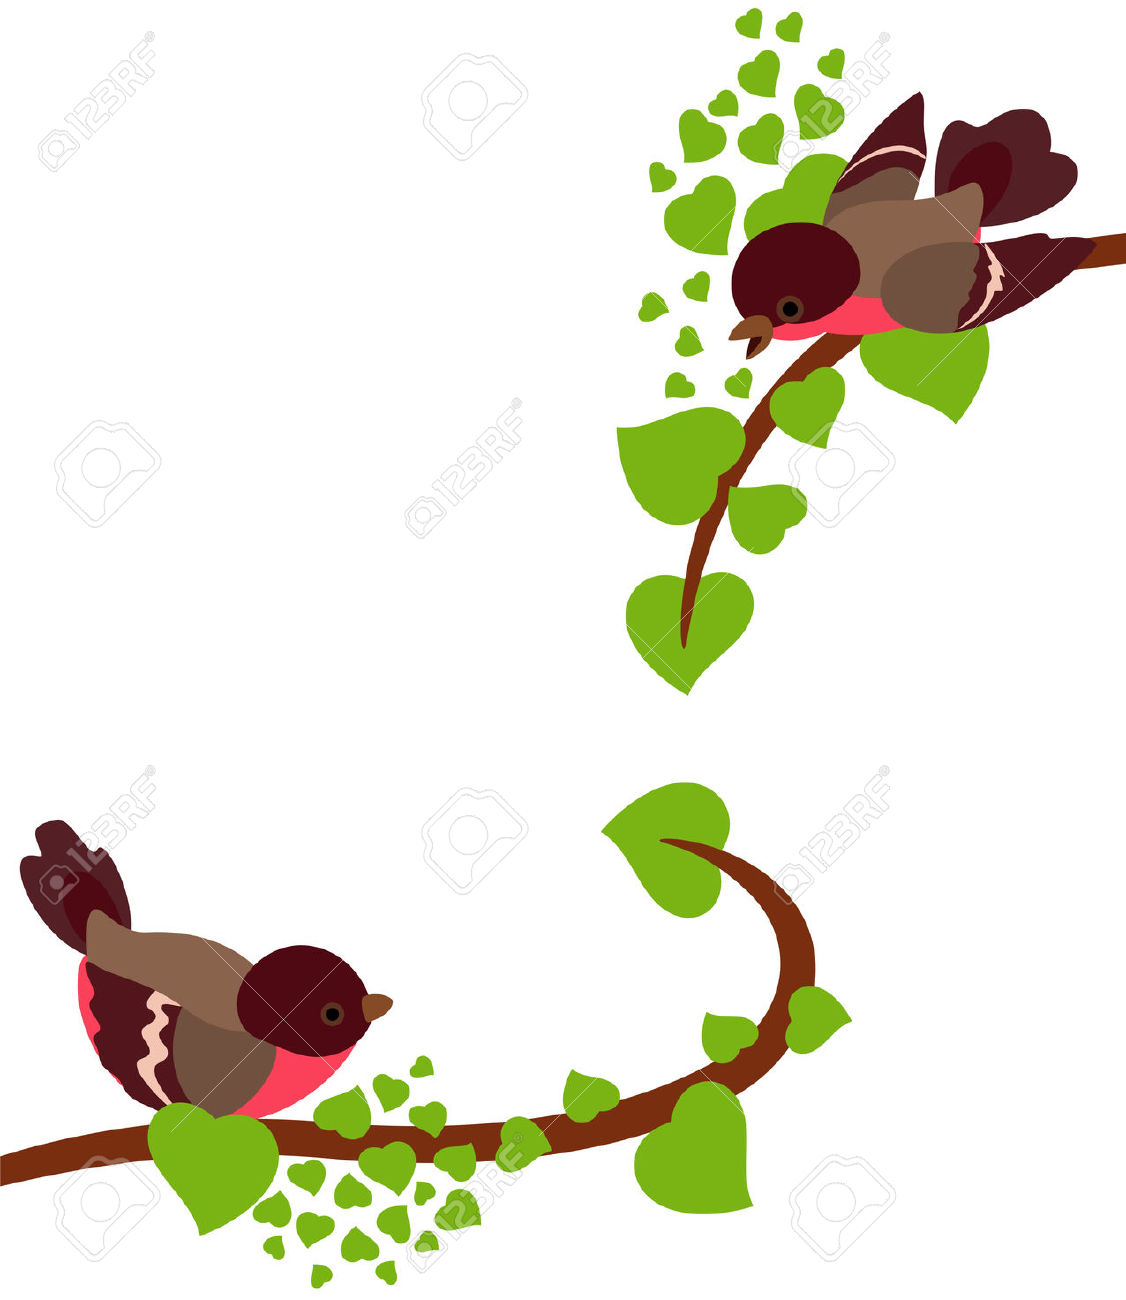 146 Vector Robin Stock Vector Illustration And Royalty Free Vector.